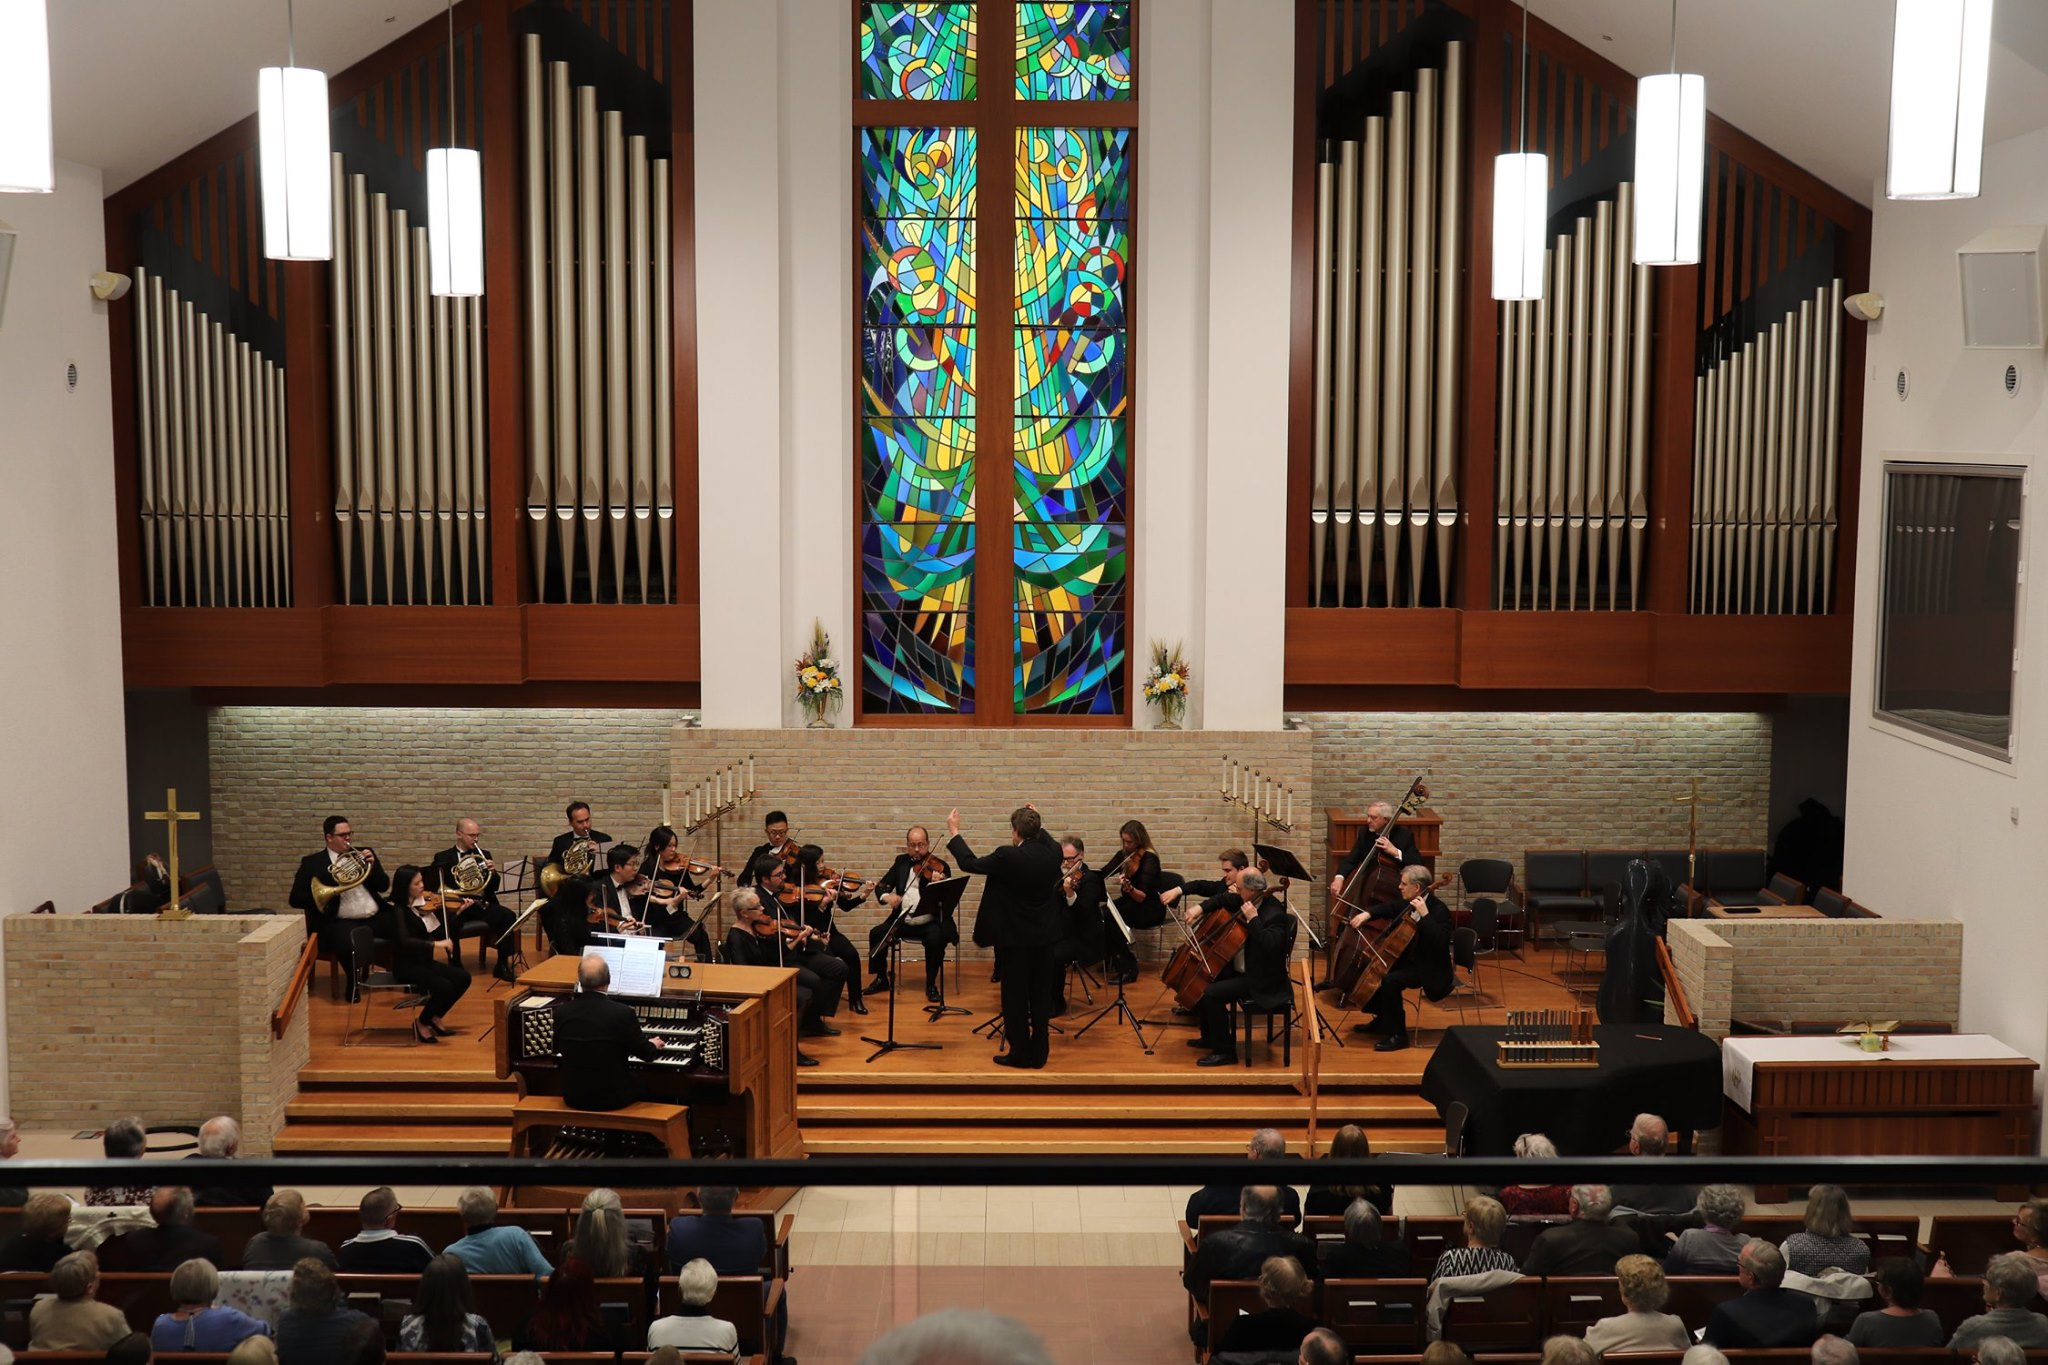 Brantford Symphony Orchestra Presents Pipes & Strings